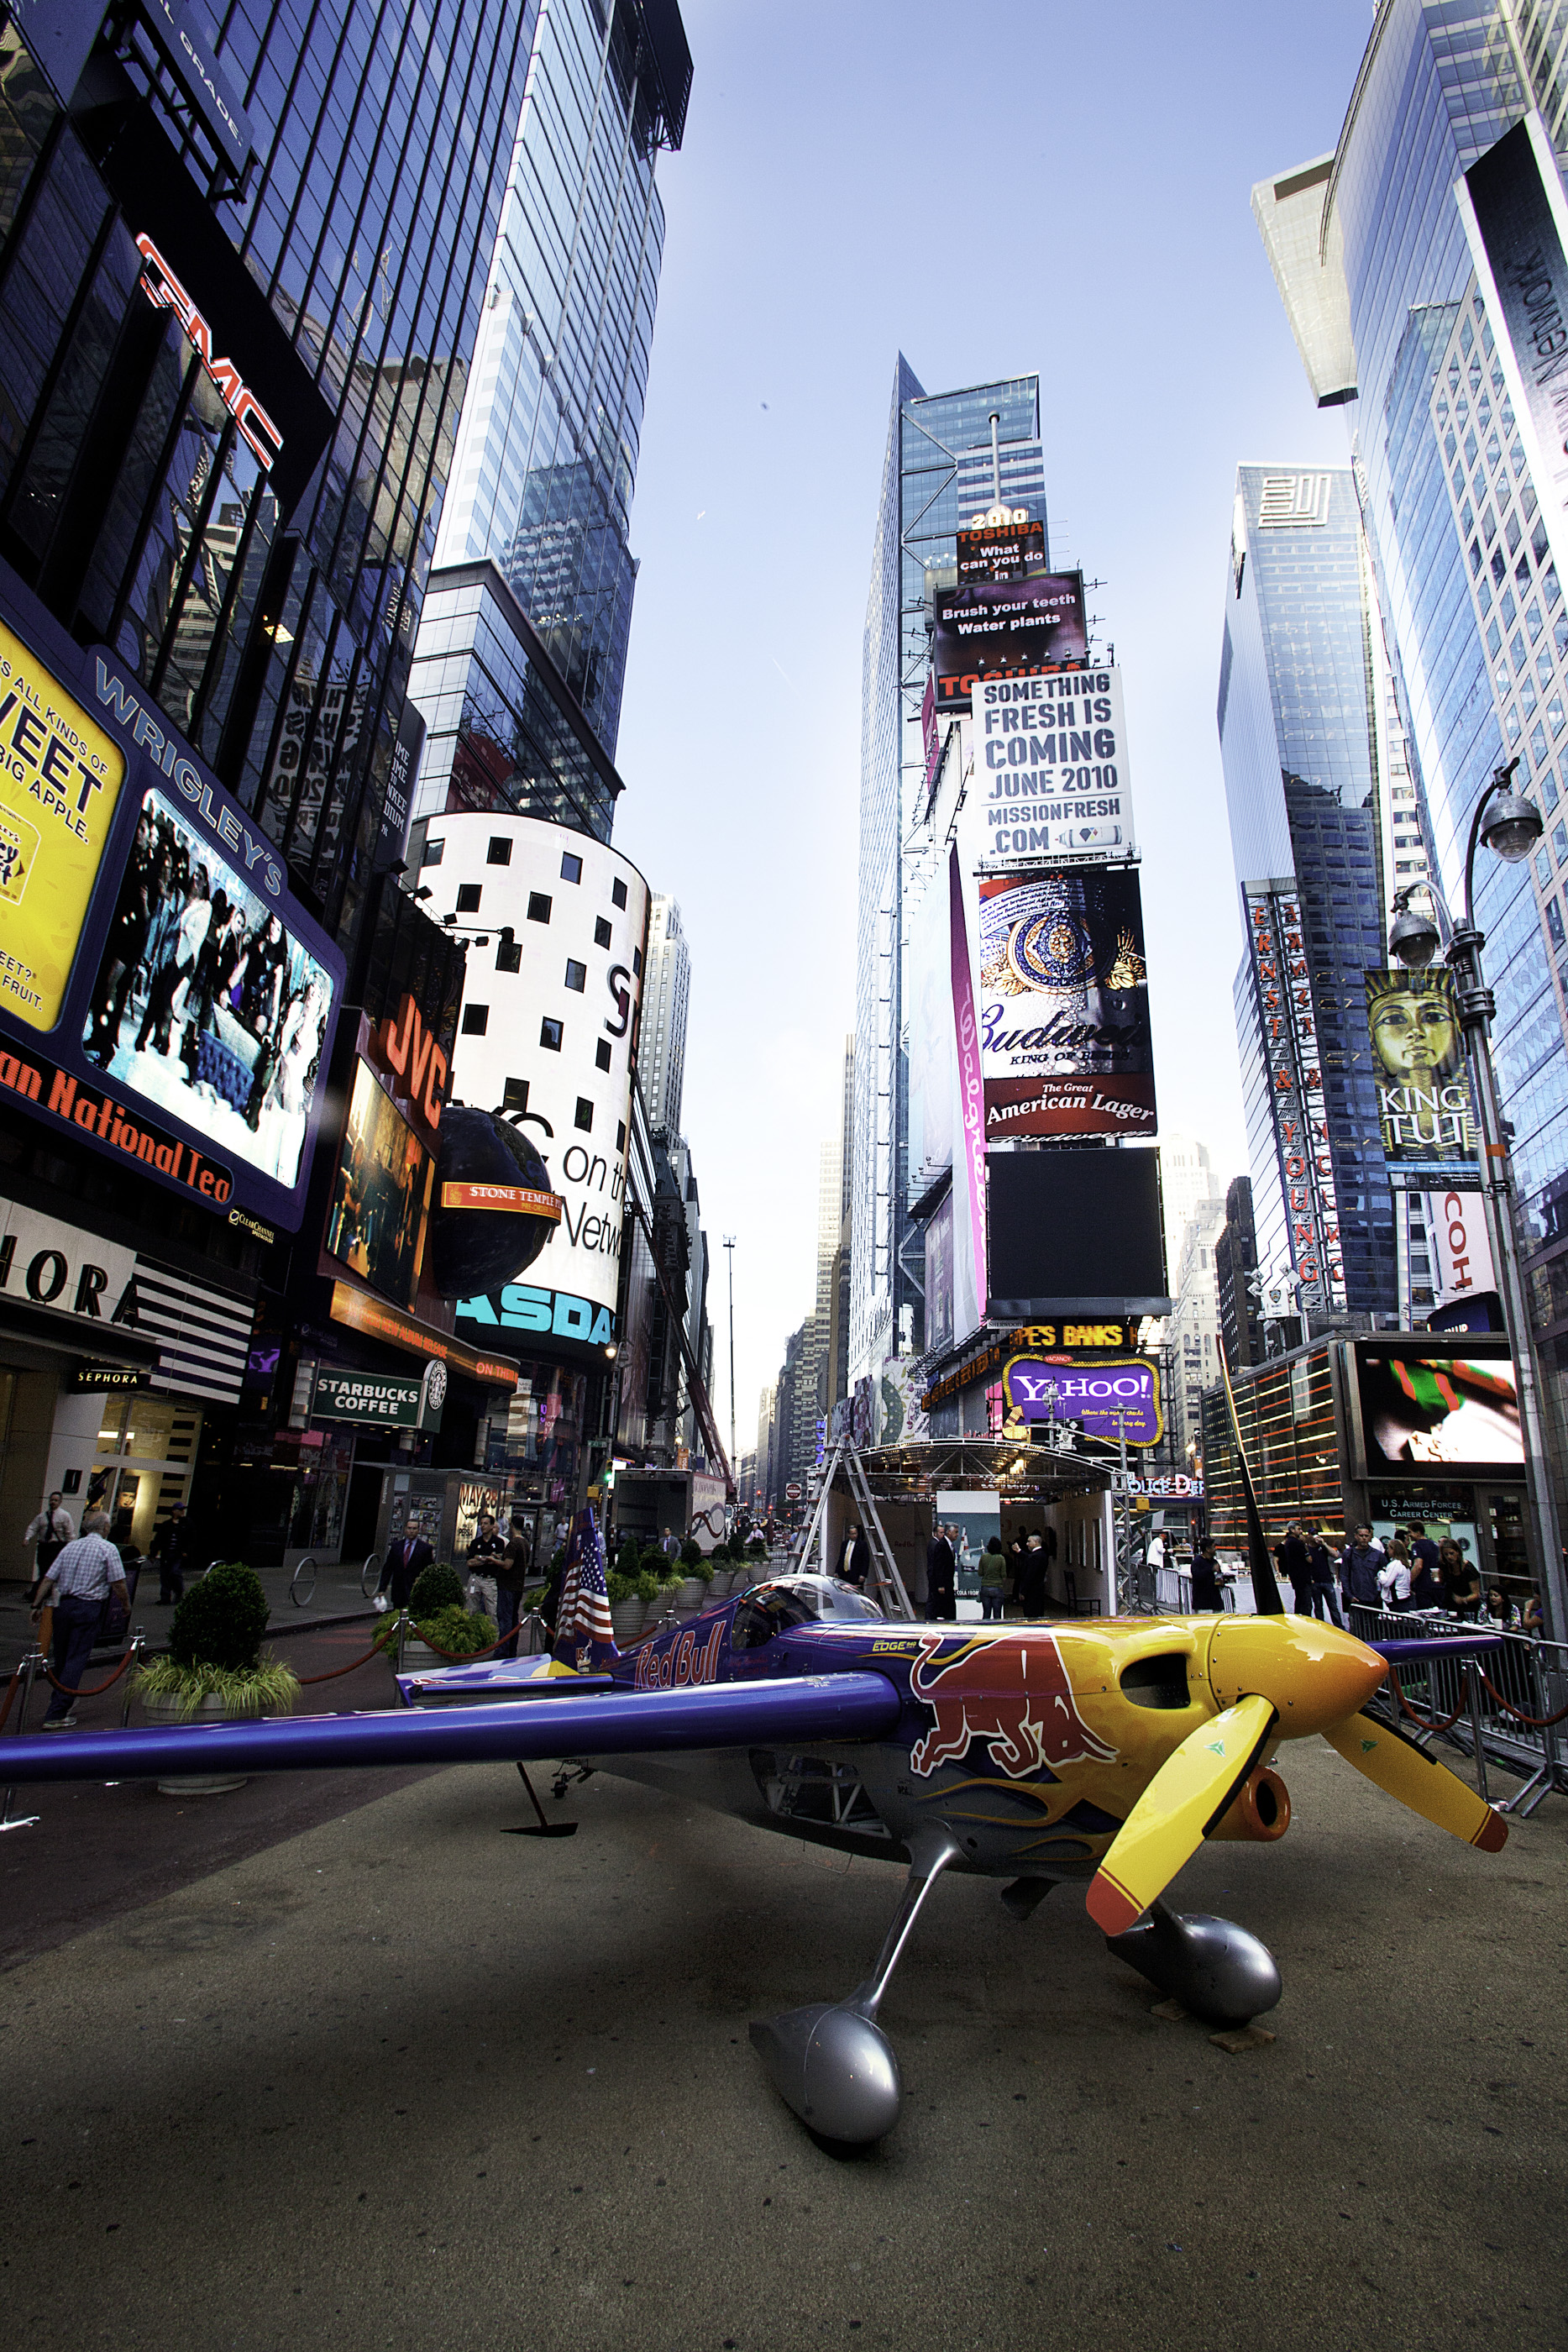 Un avion Red Bull Air Race en plein coeur de New York à Time Square - 25 05 2010 (crédits : Getty Images pour Red Bull Air Race)